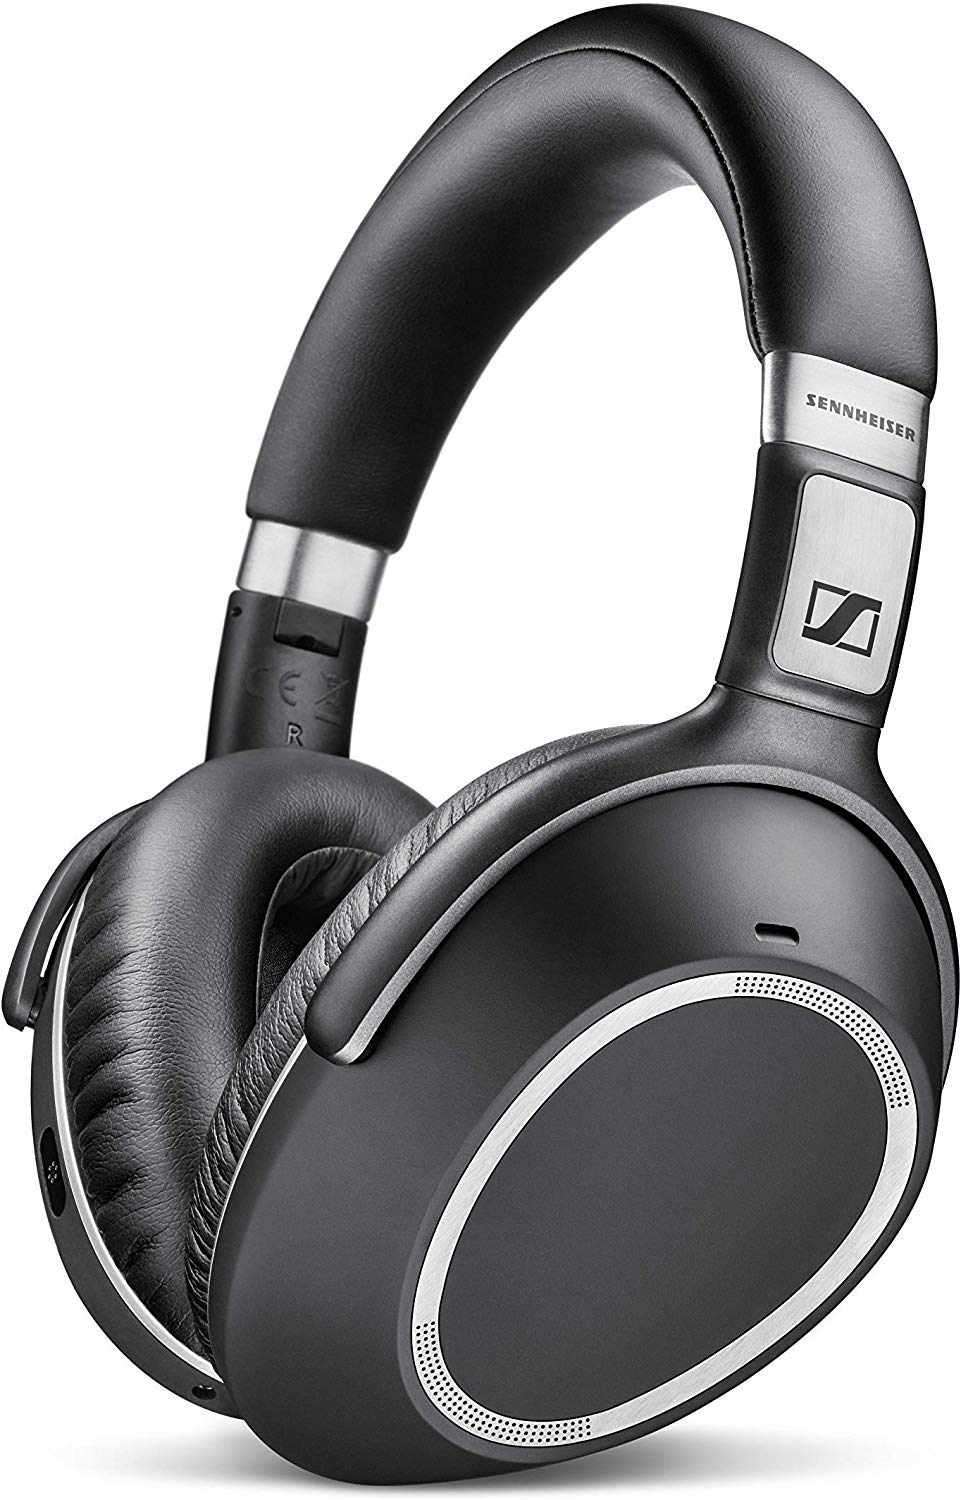 Sennheiser PXC 550 Wireless Headphones With Active Noise Cancellation